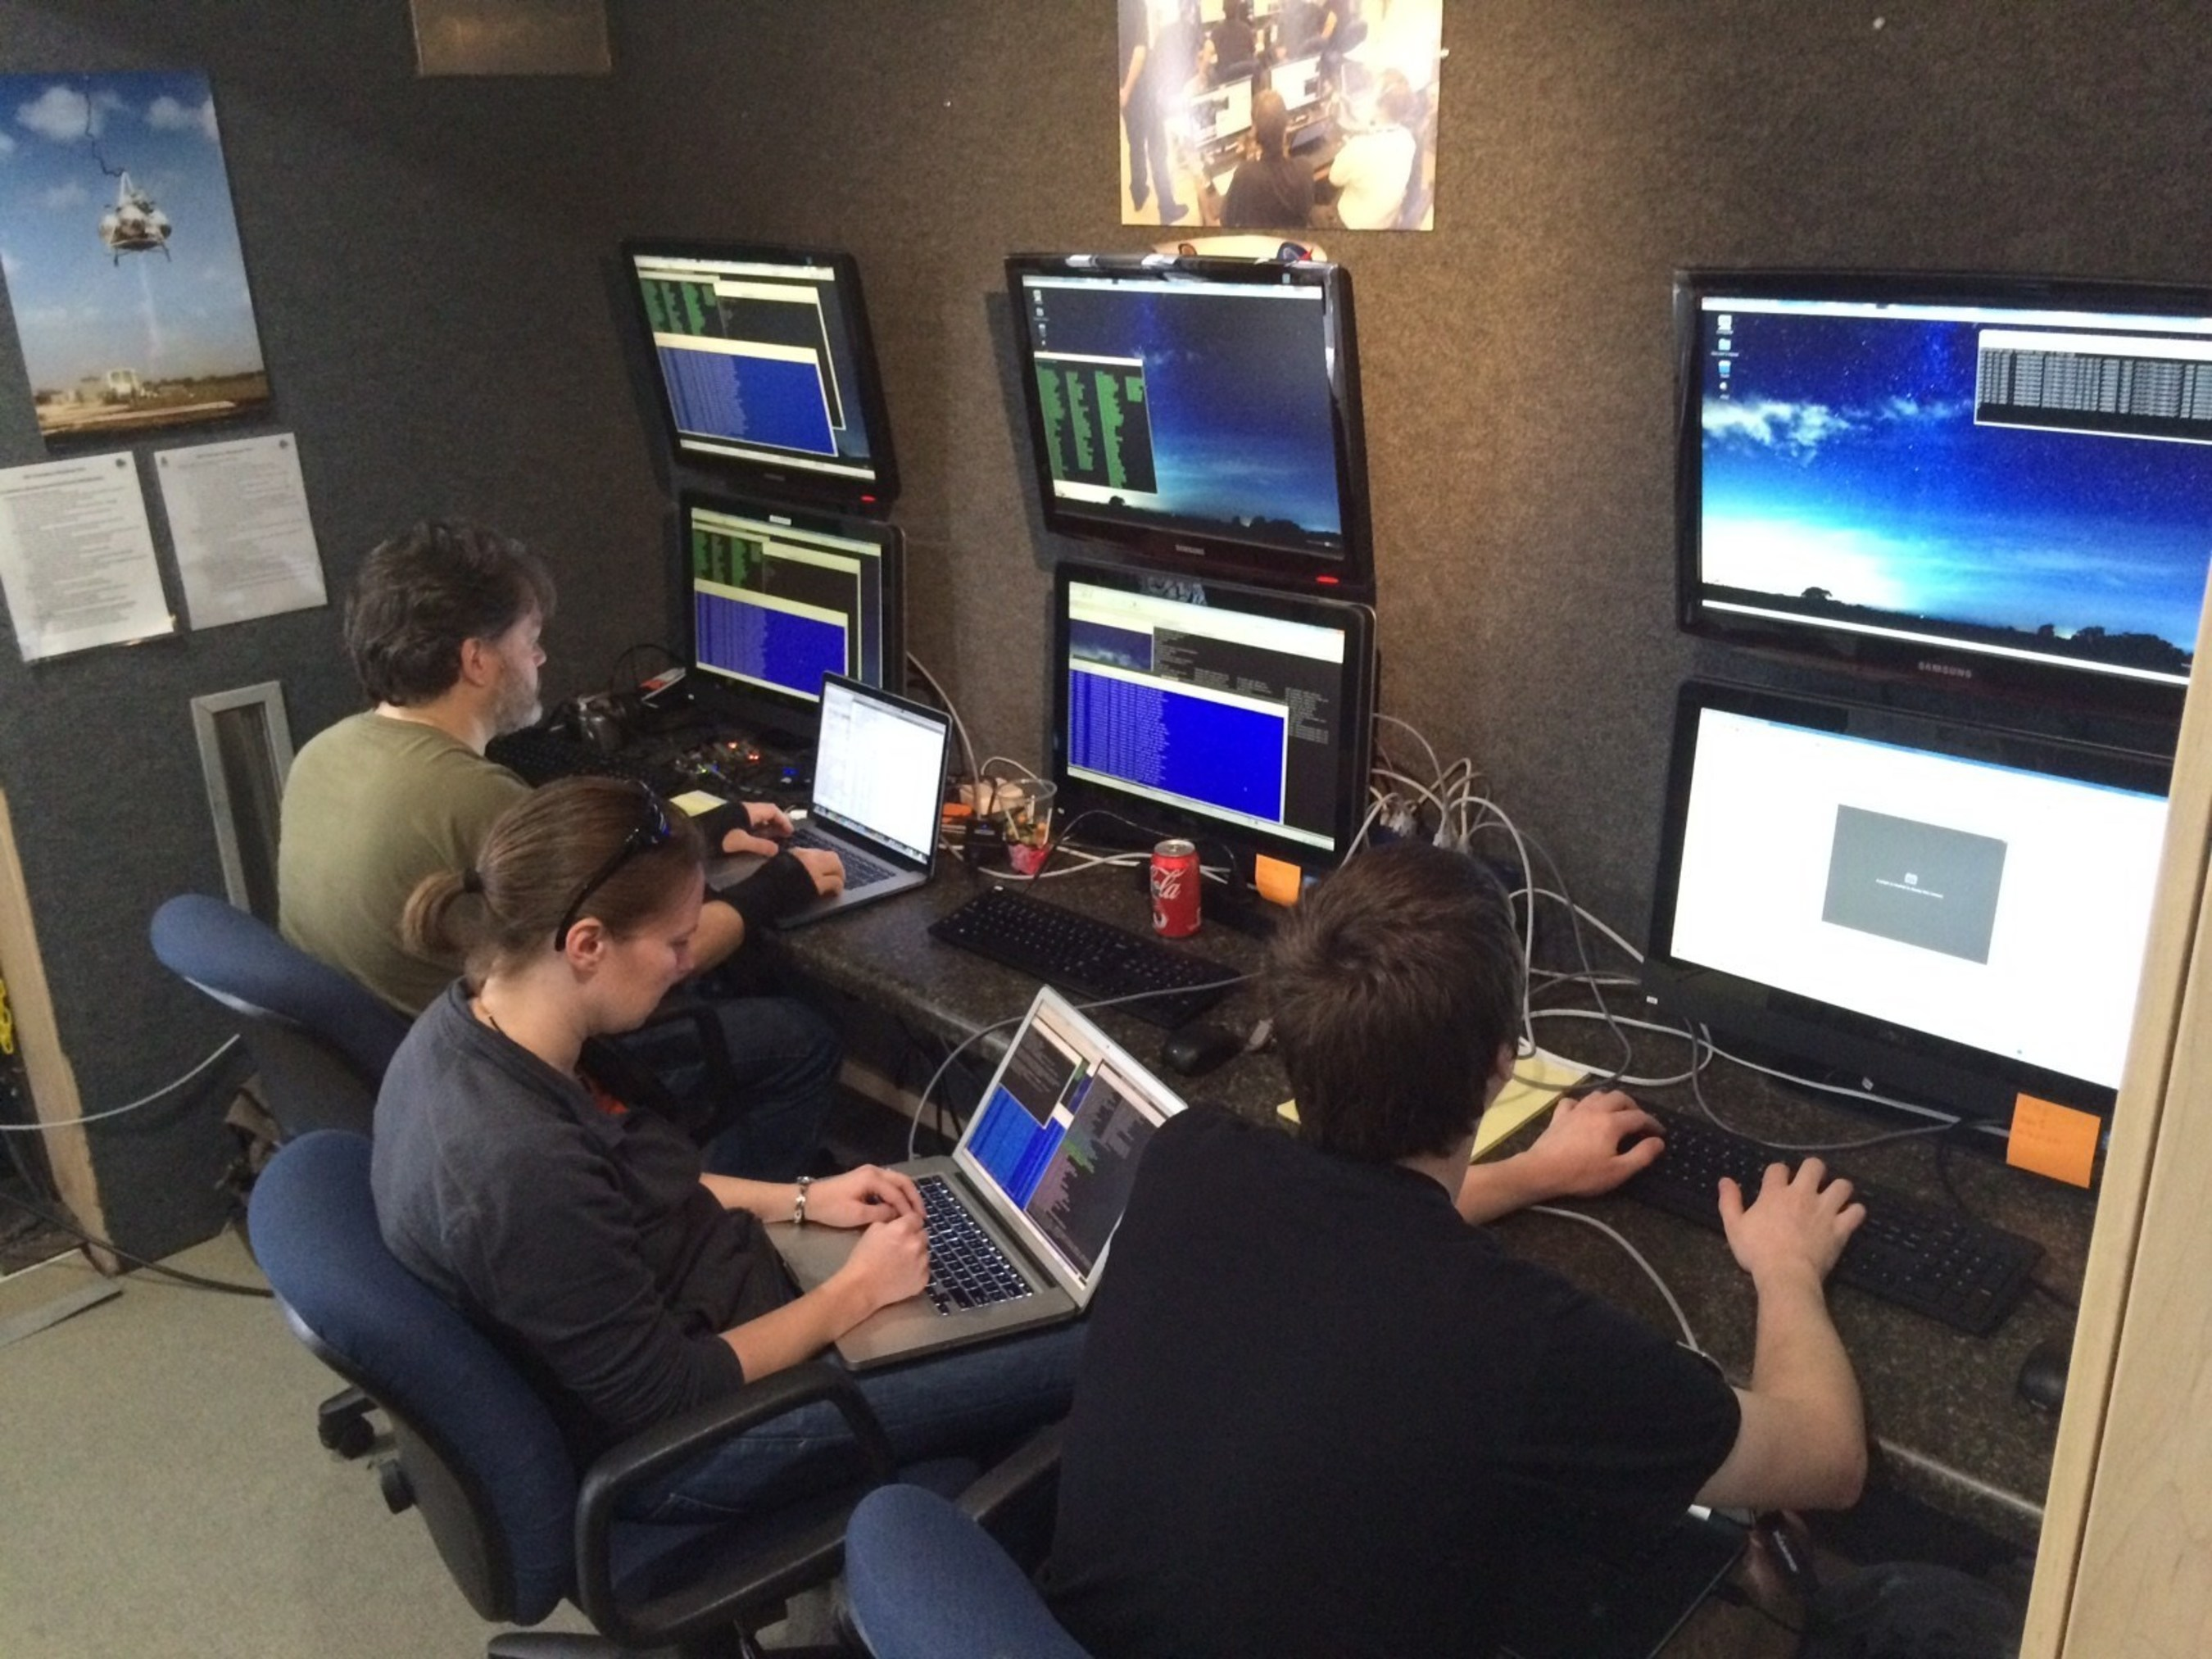 Moon Express engineers controlling the flight tests from a Mobile Mission Control Center (MMCC) located at the Kennedy Space Center Shuttle Landing Facility